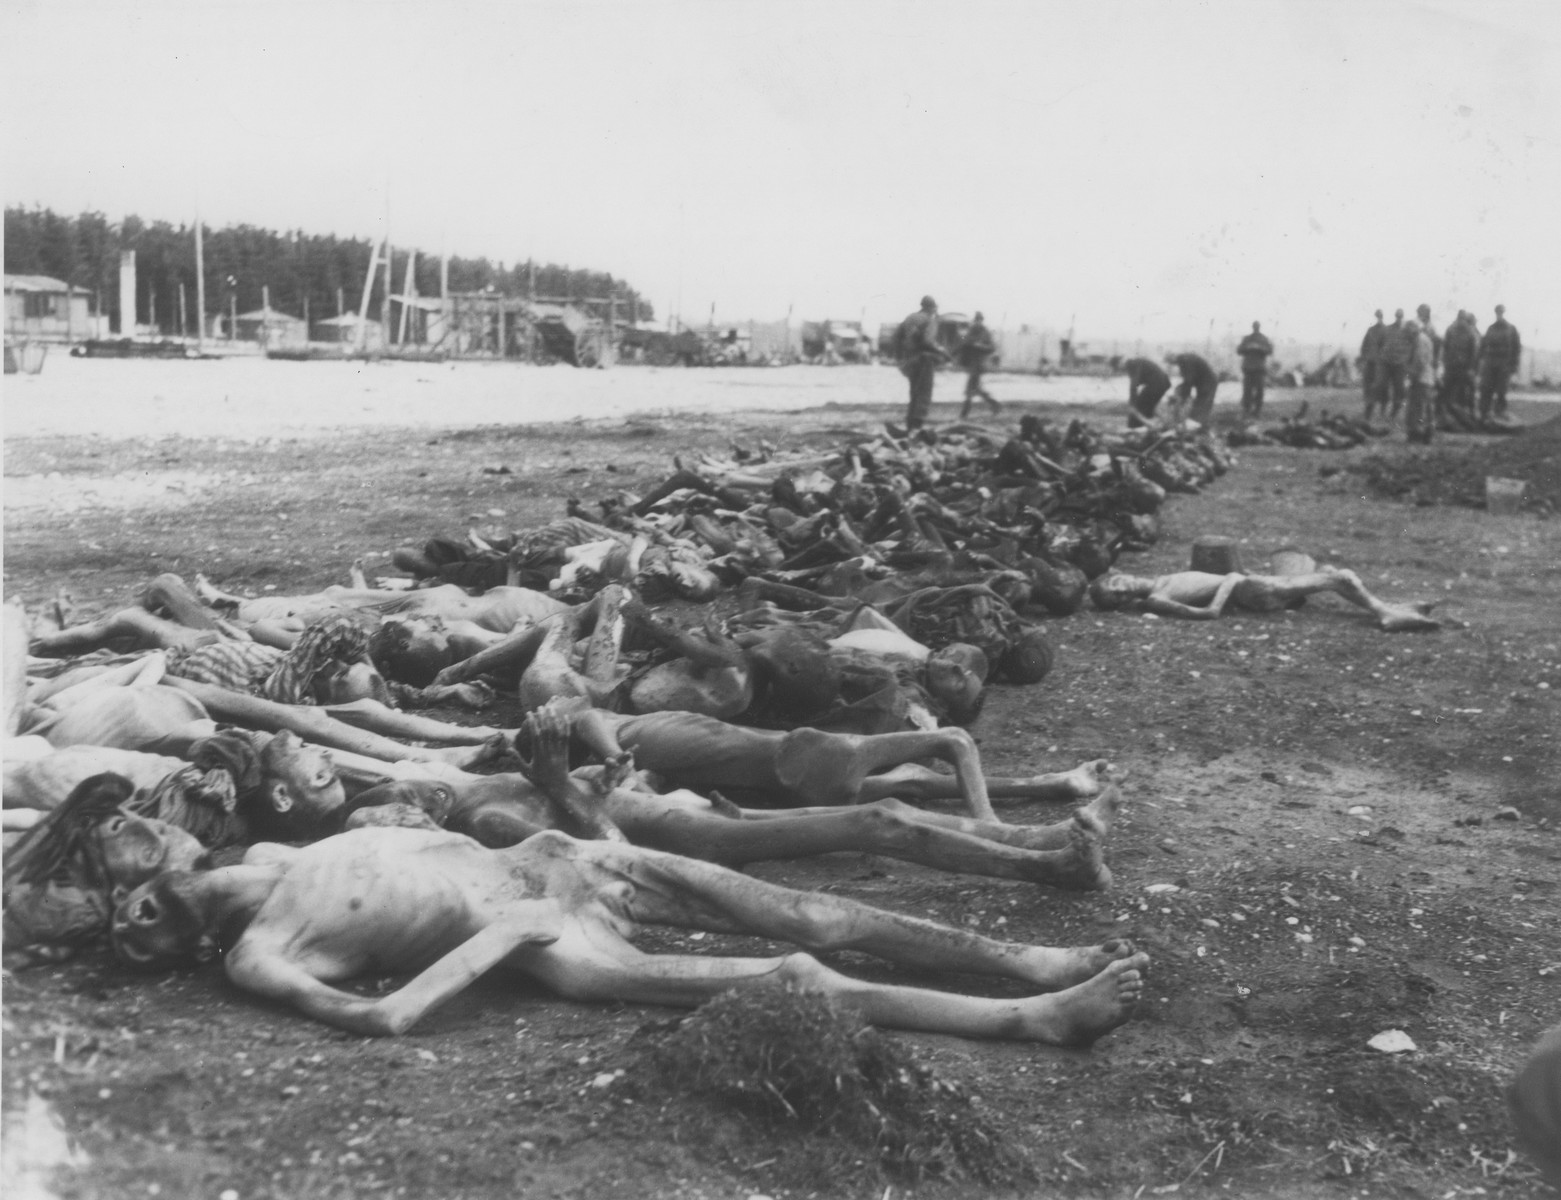 American troops examine a row of bodies laid out in a row in Hurlach concentration camp.